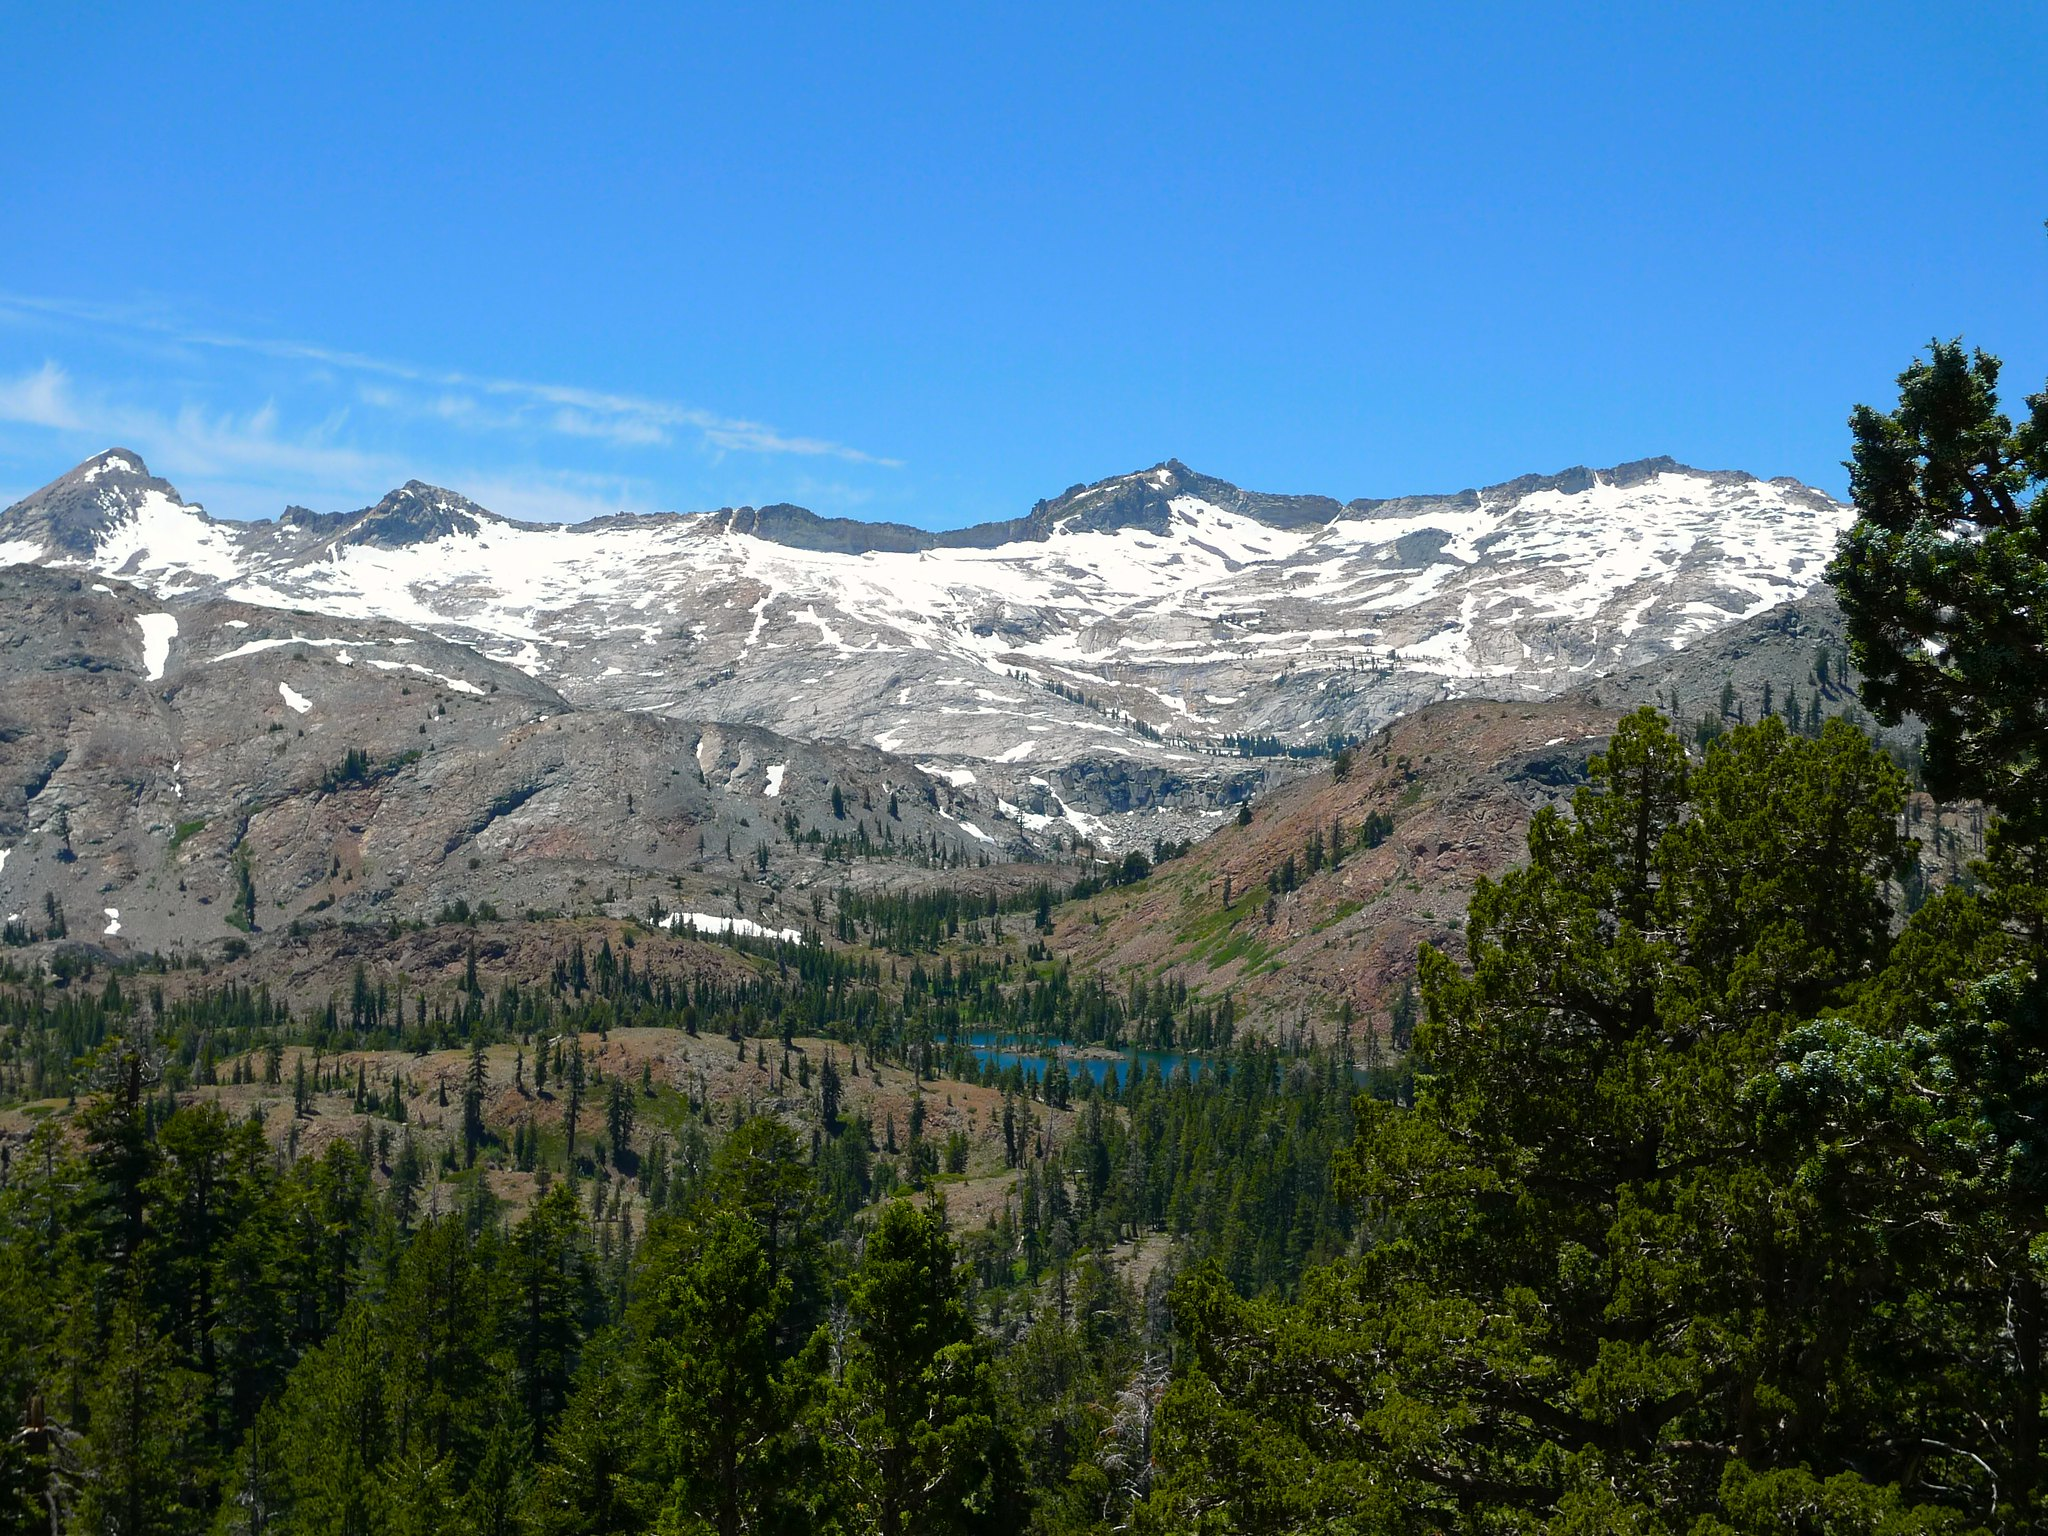 As we gain elevation towards Dick's Pass, the views back towards Susie Lake and the Crystal Range open up